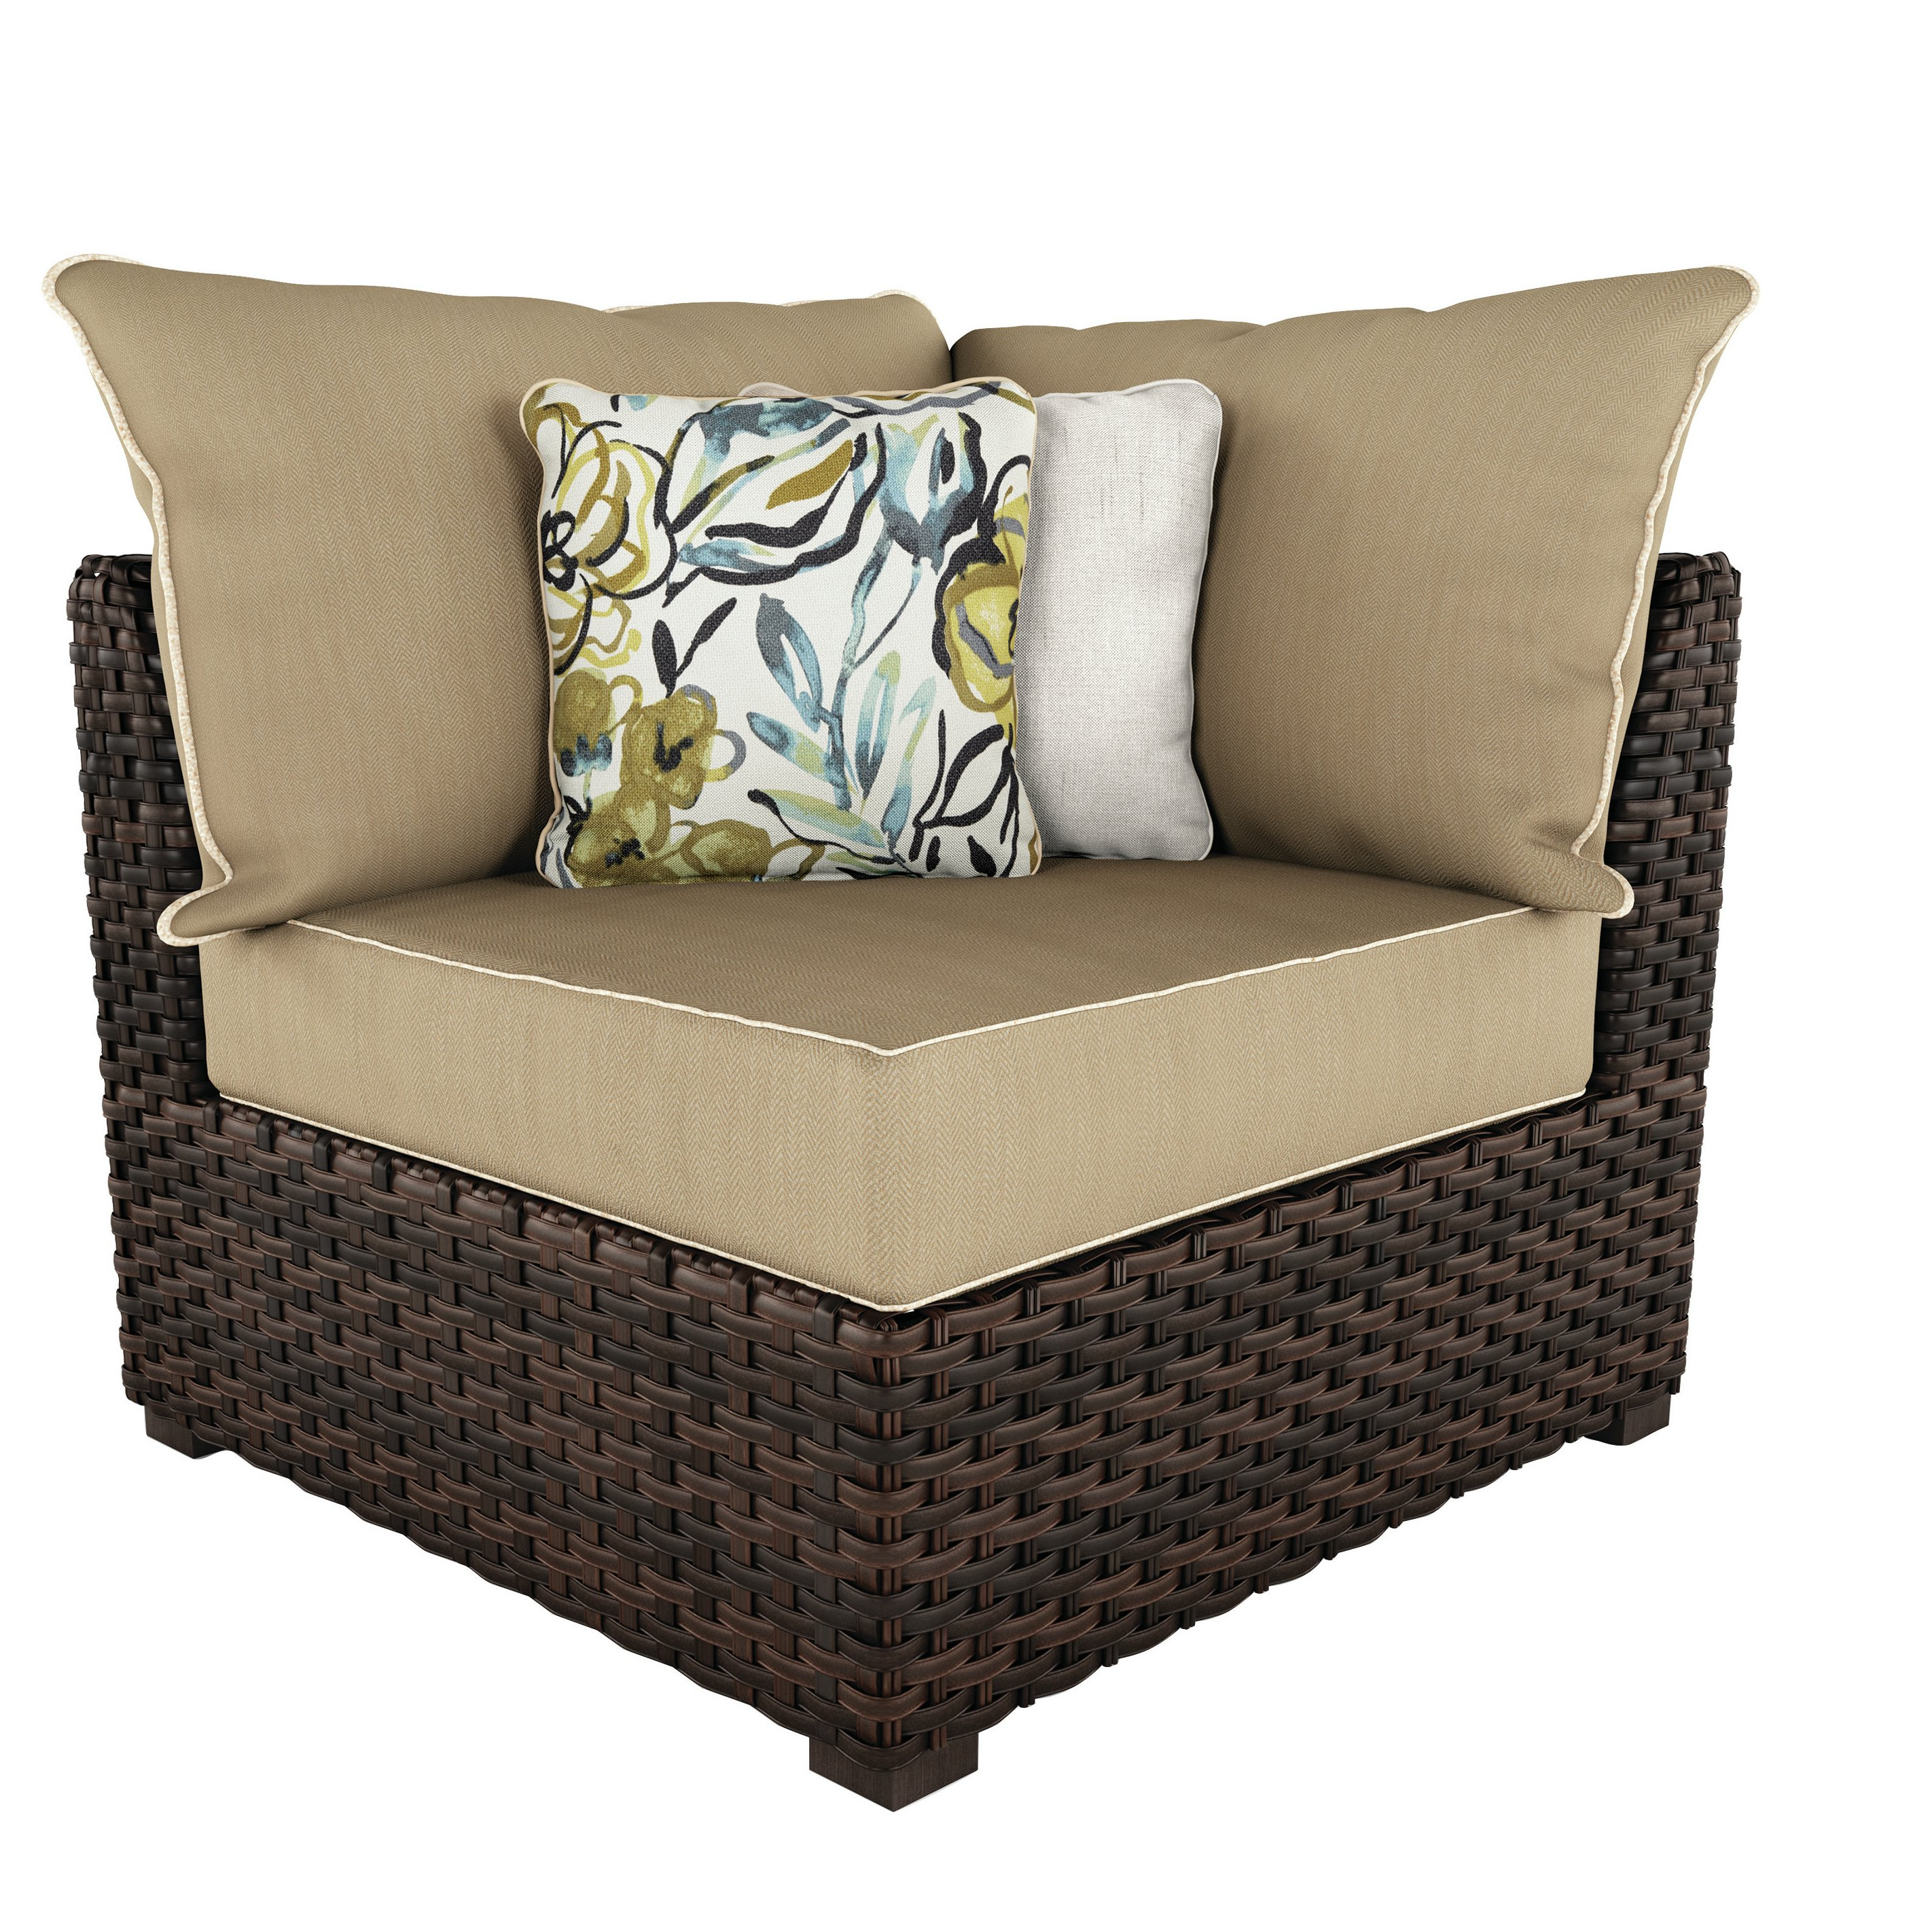 Dante Patio Chair With Cushions Within Widely Used Stapleton Wicker Resin Patio Sofas With Cushions (View 4 of 20)